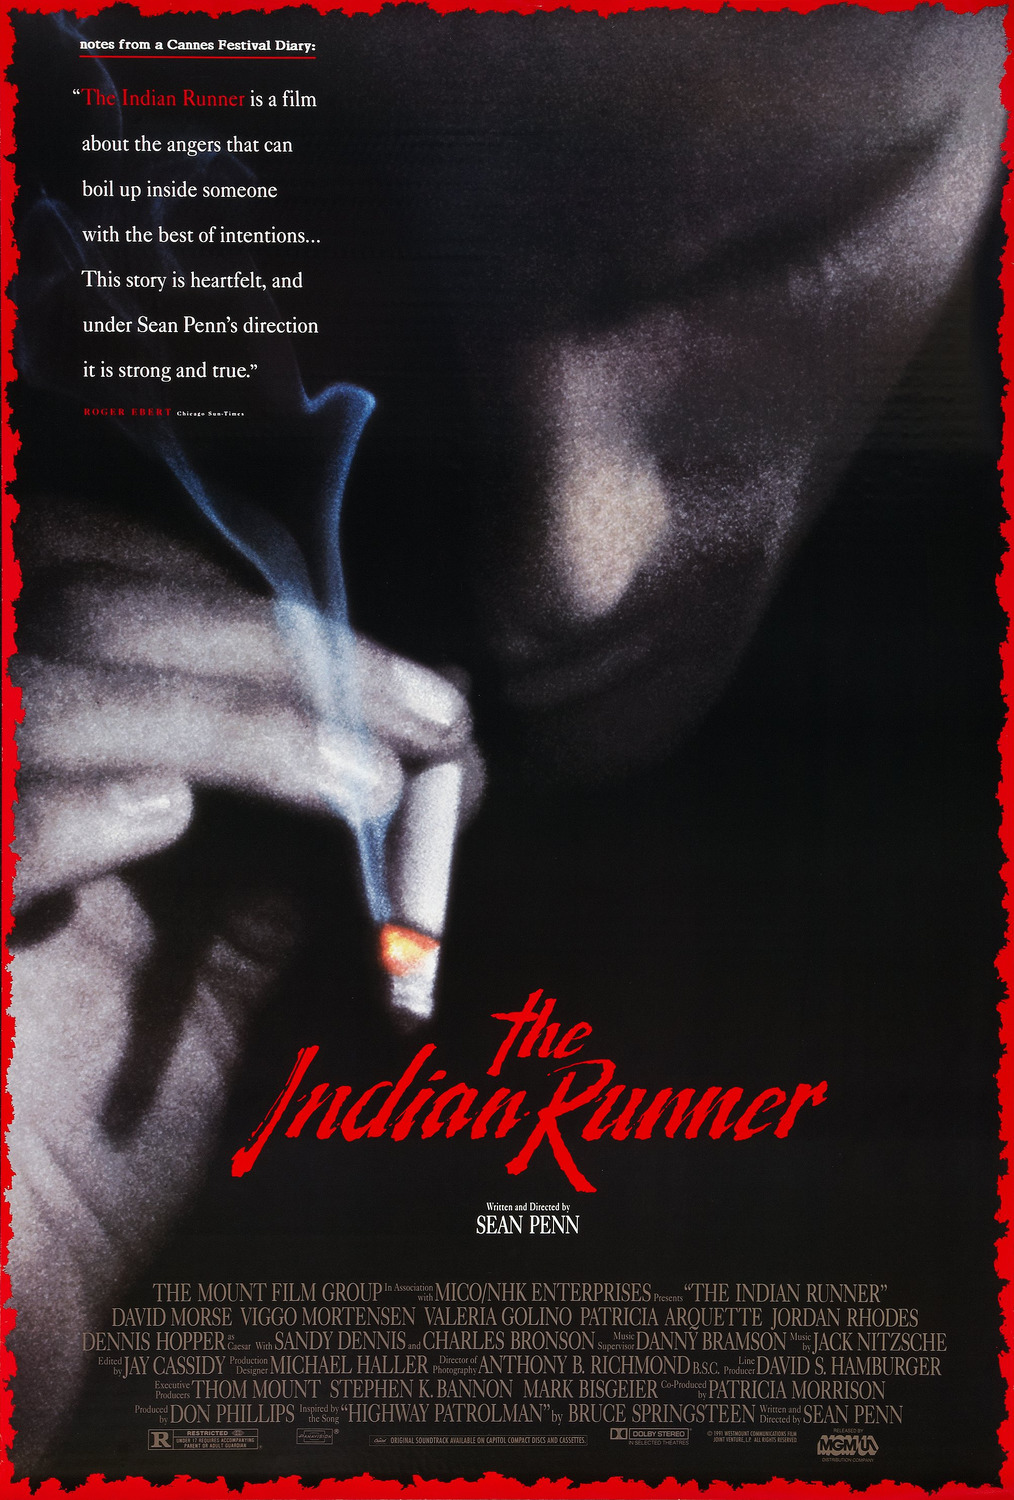 The Indian Runner : Extra Large Movie Poster Image - IMP ...